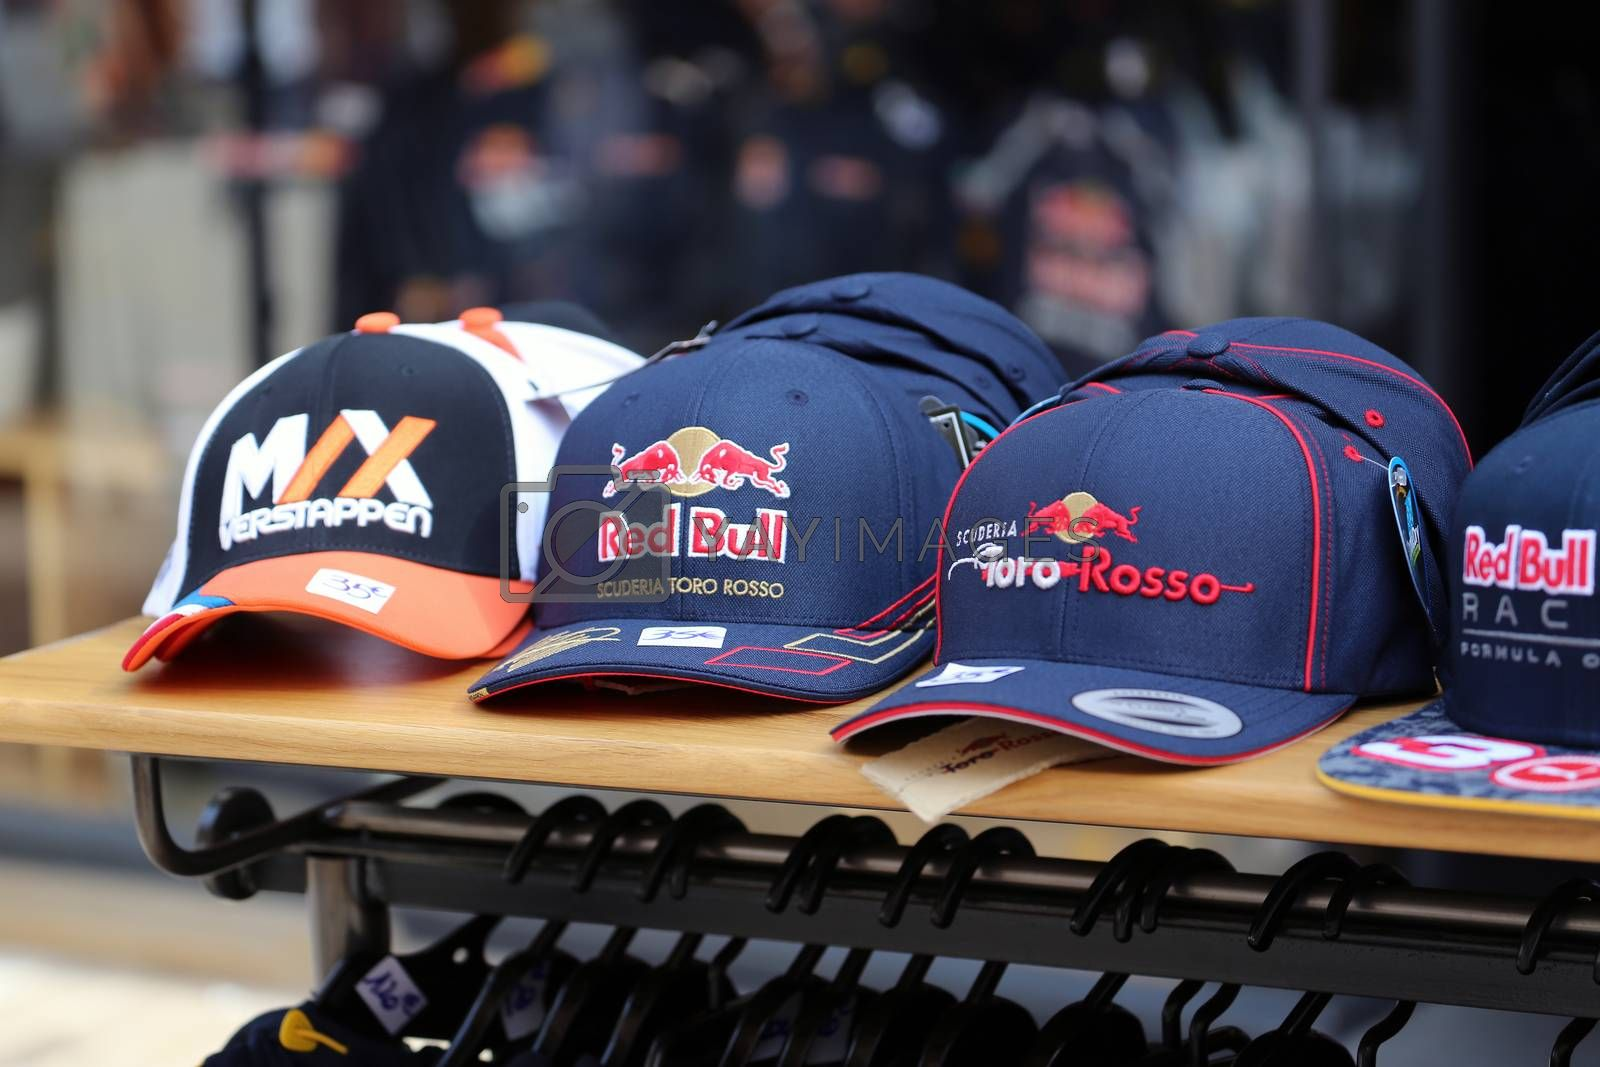 Monte-Carlo, Monaco - May 28, 2016: Many Different Caps of Famous Formula One Team For Sale During the Monaco Formula 1 Grand Prix 2016